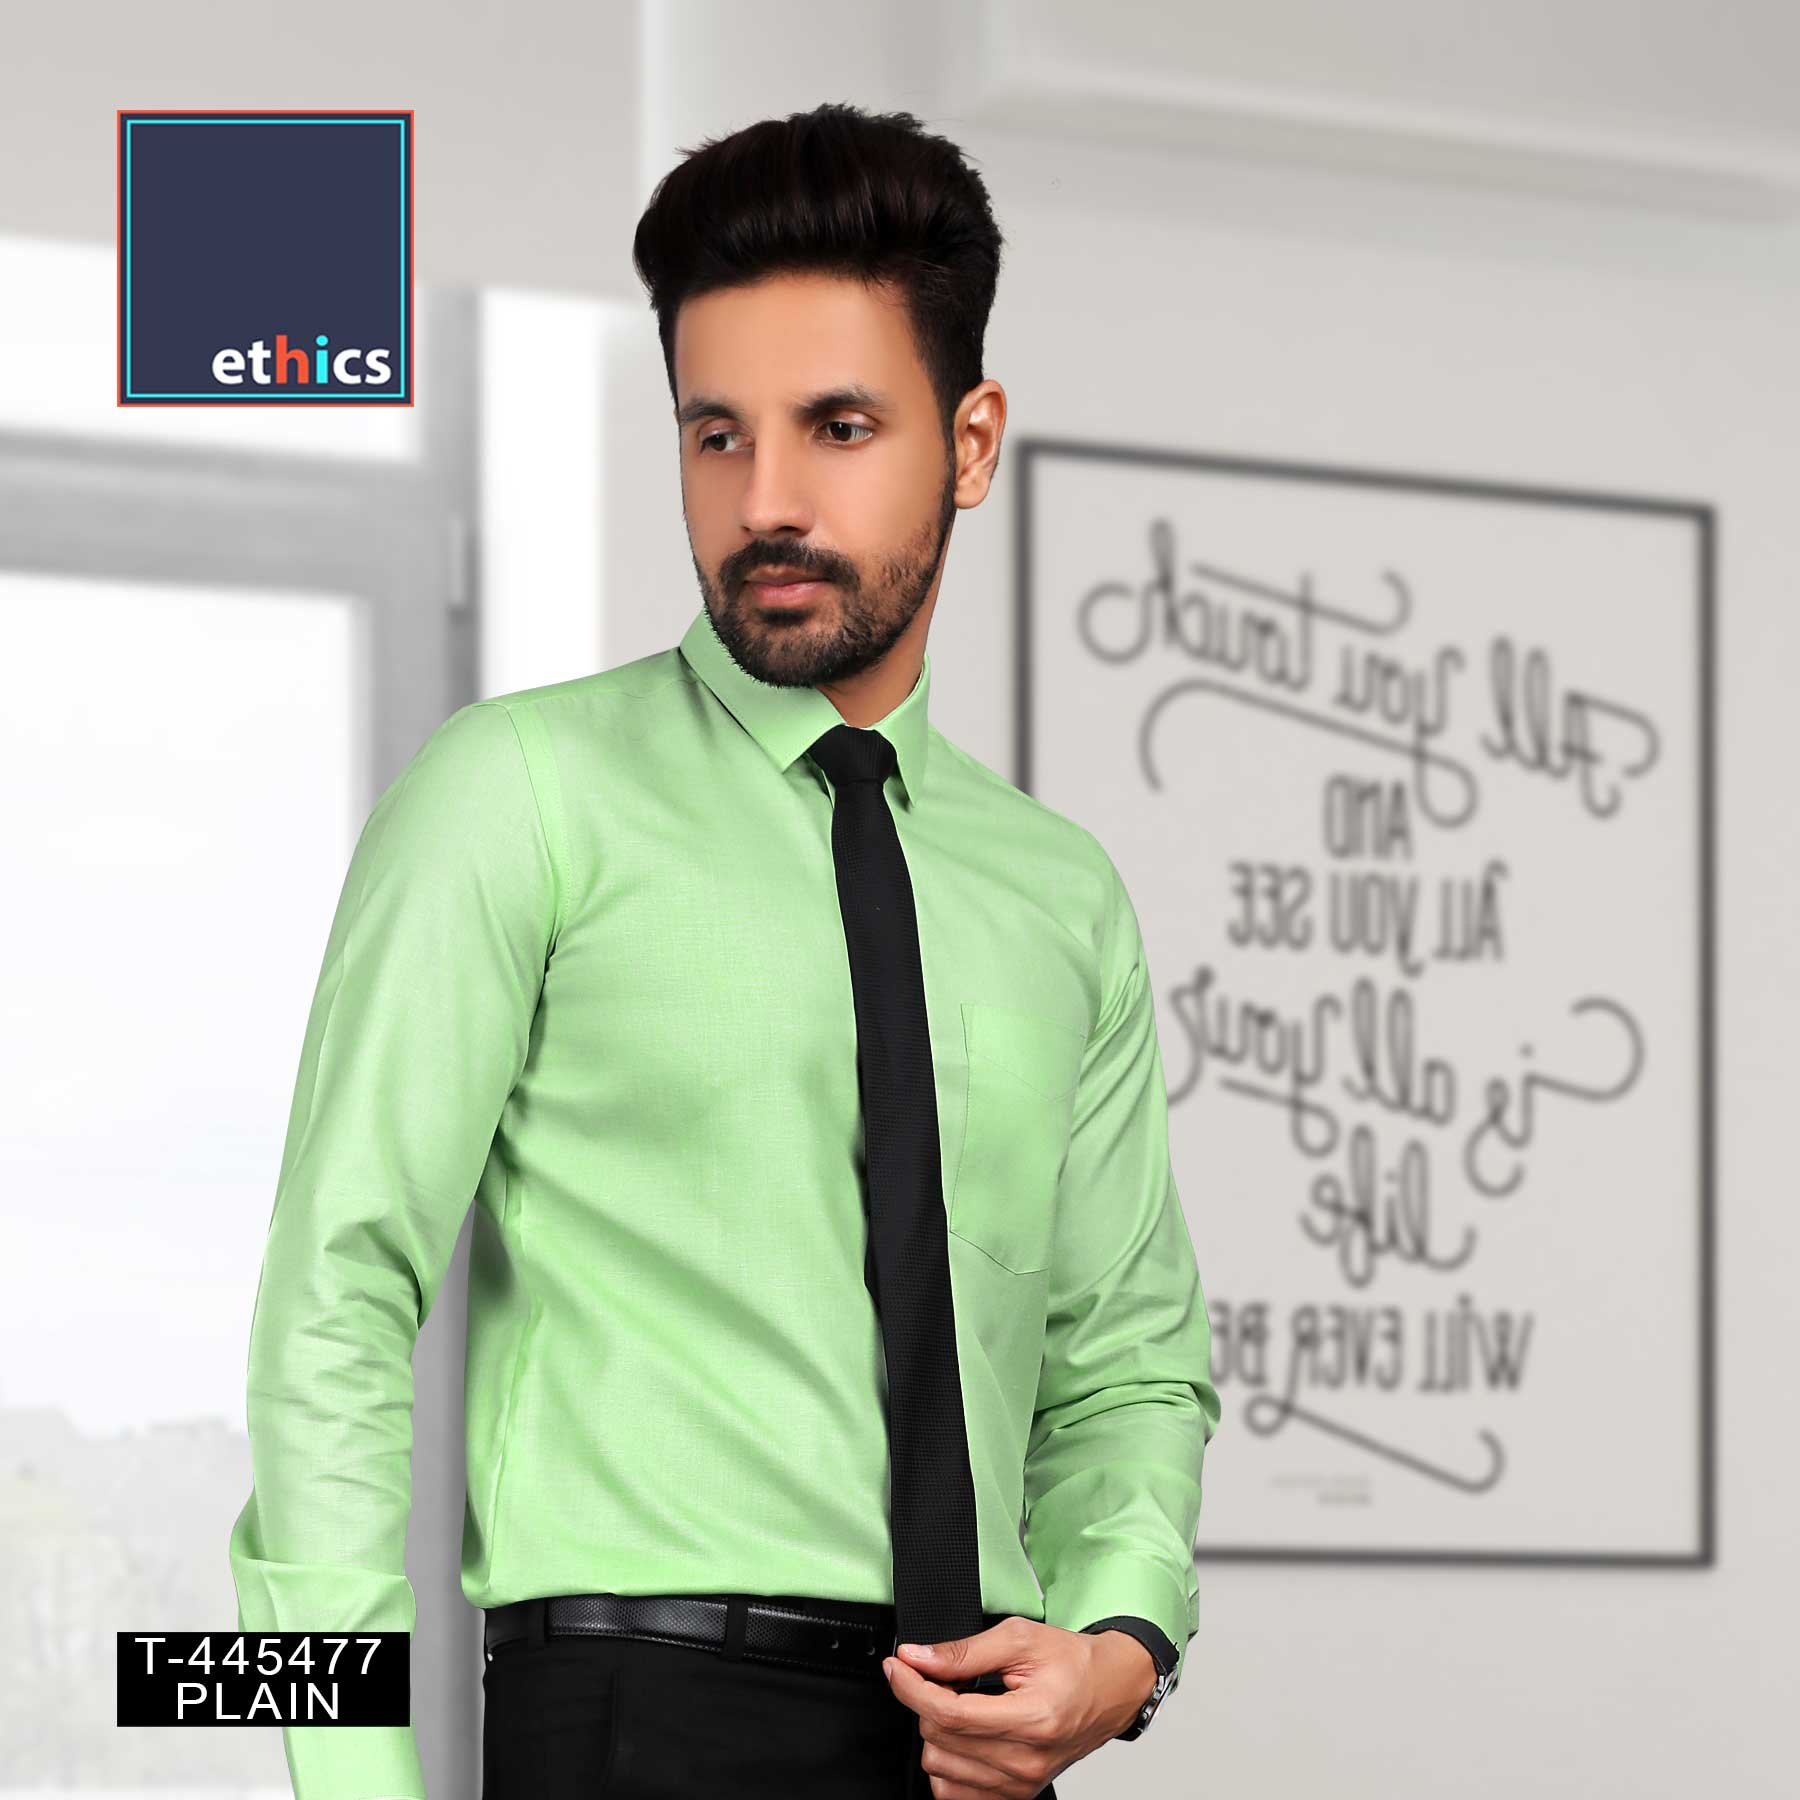 Green Solid Men's Ready Made Corporate Uniform Shirt for Formal Uniforms